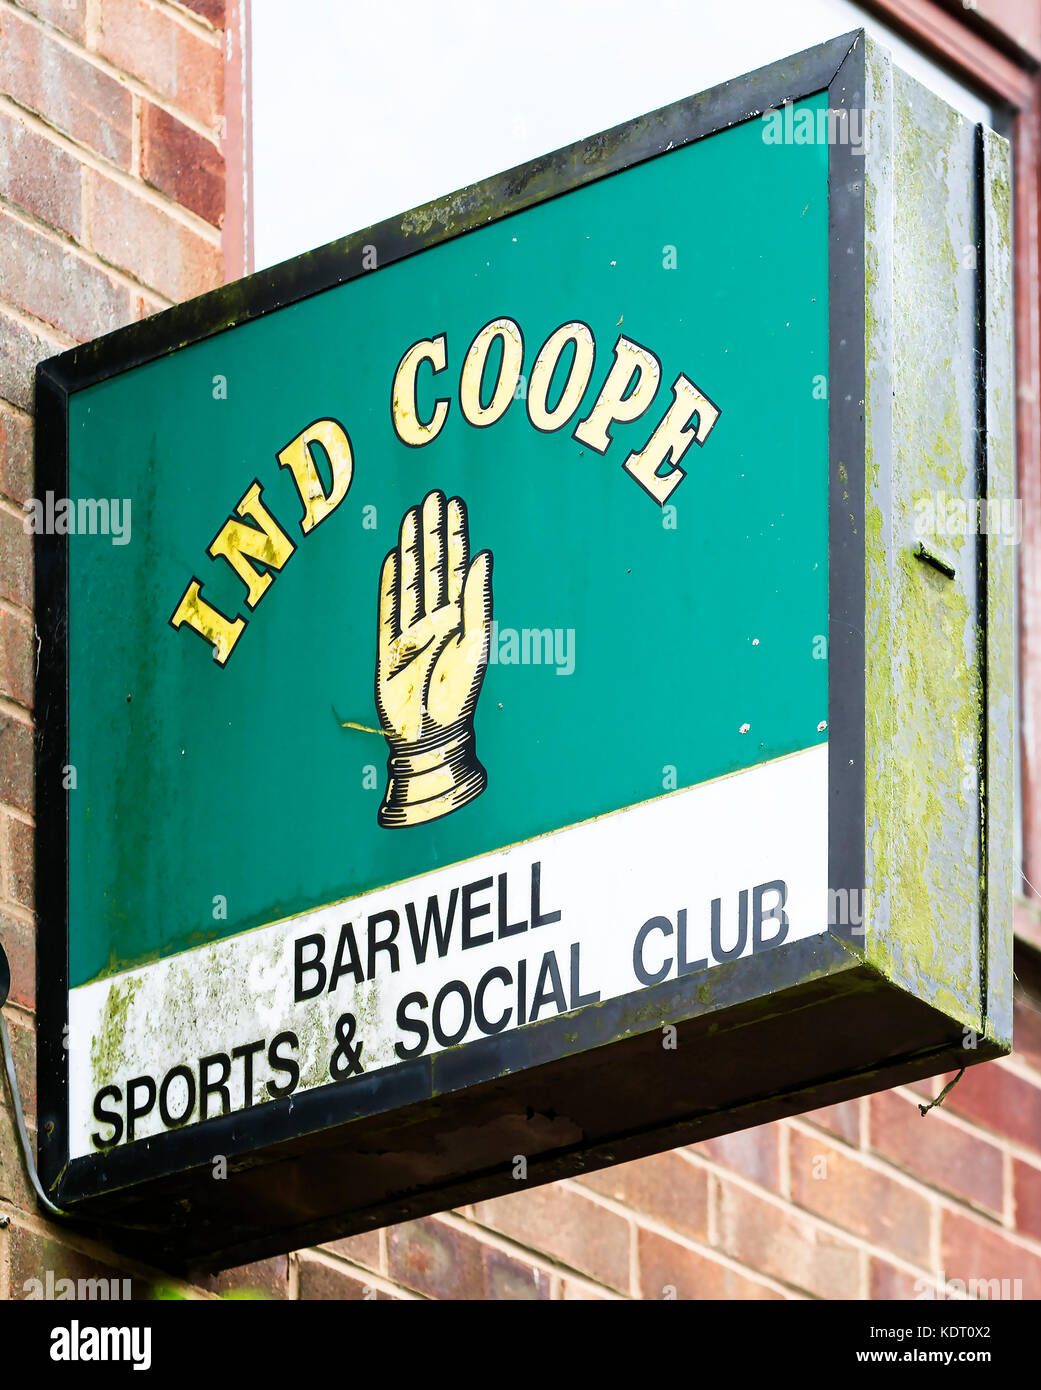 Old Ind Coope sign on the wall of Barwell Sports & Social Club in Leicestershire - Stock Image